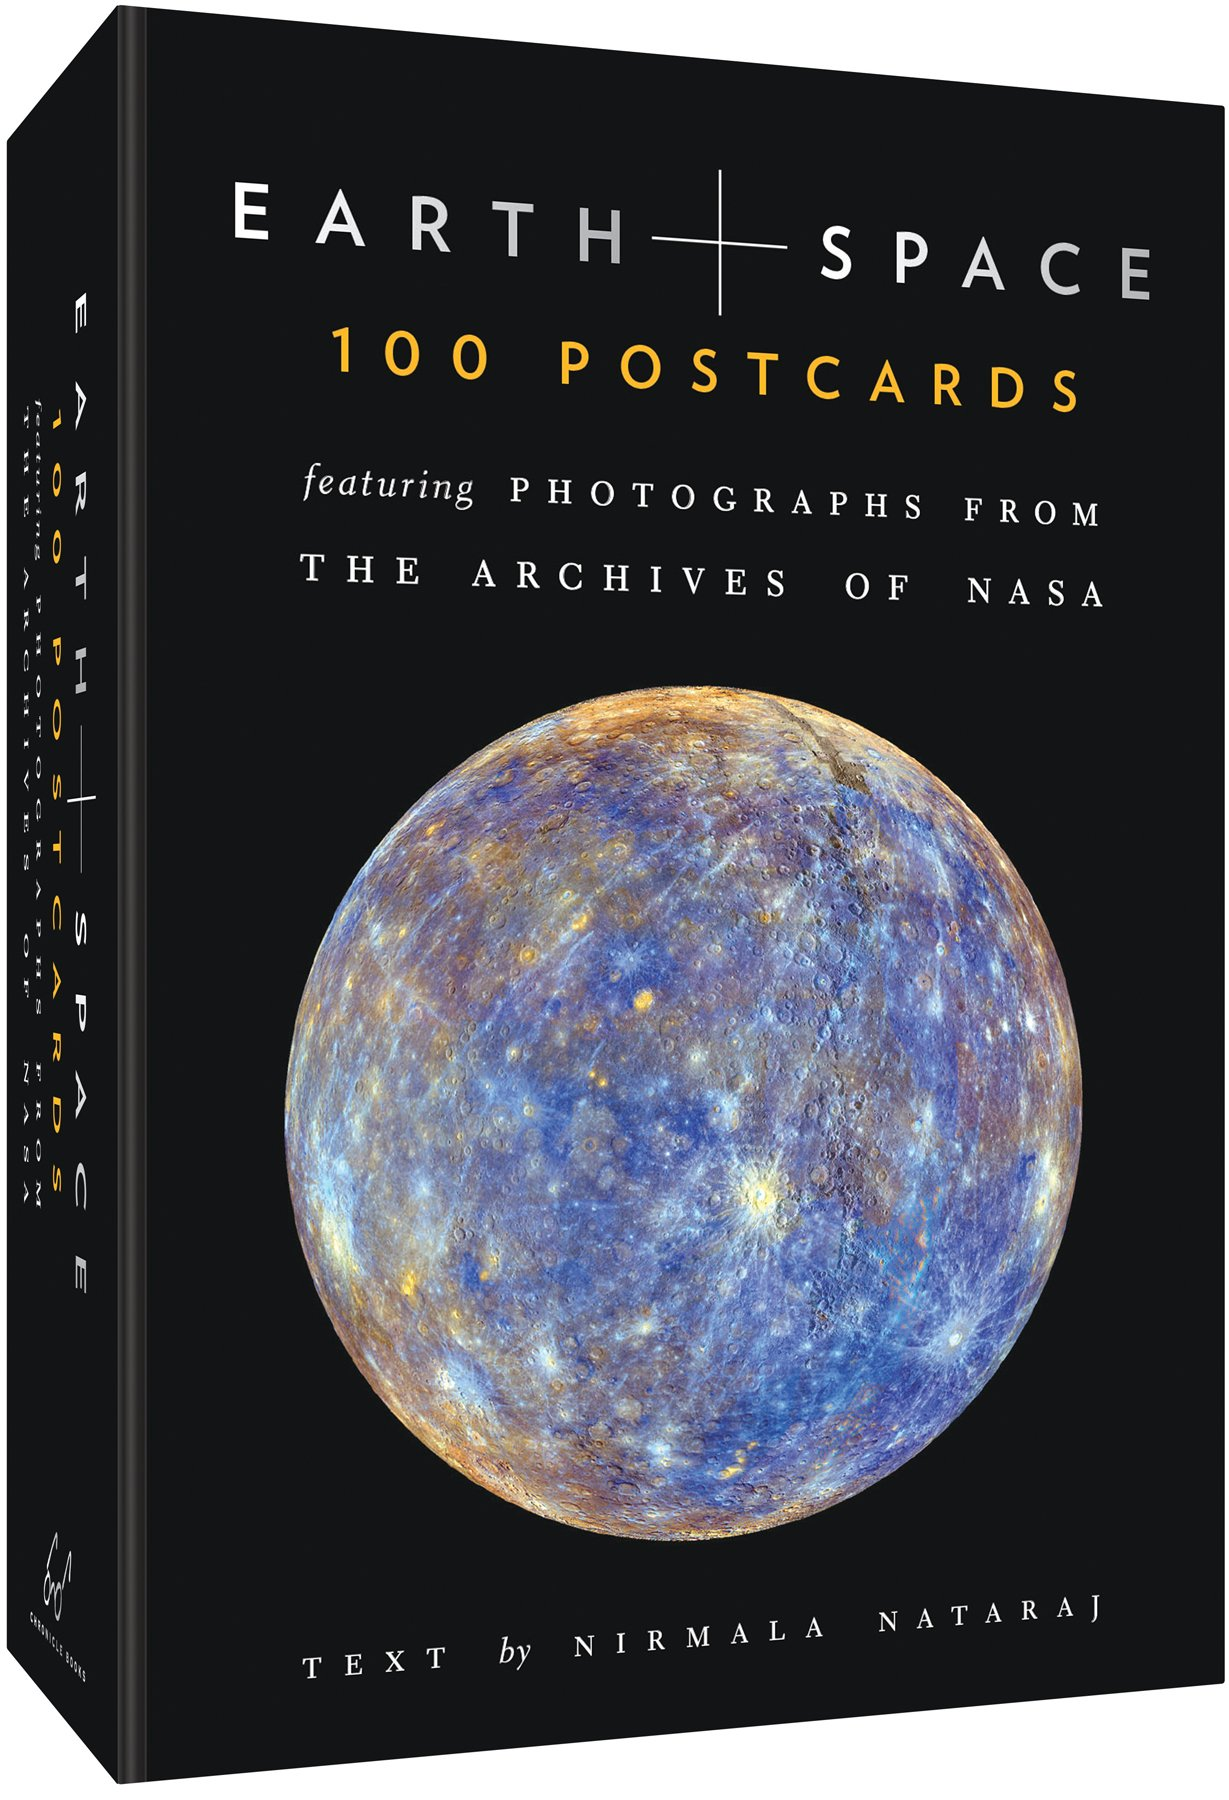 Earth Space 100 Postcards Photographs product image